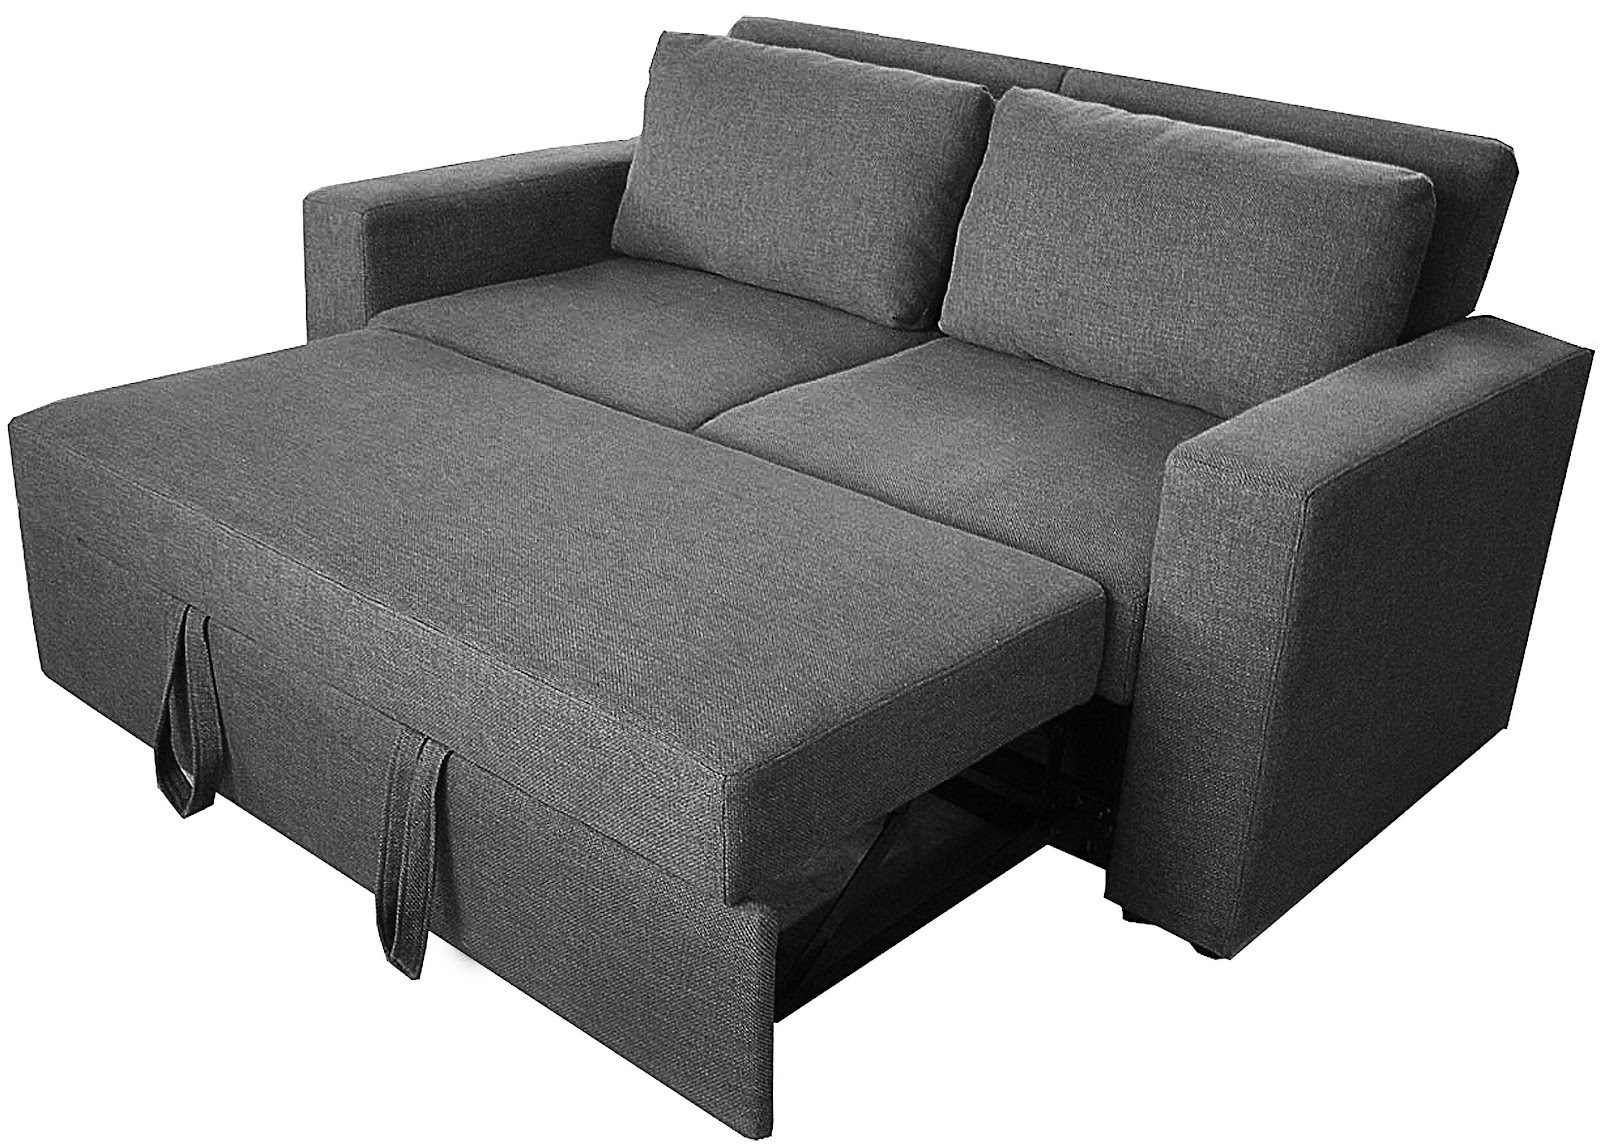 Sofa : Amusing Small Sofa Sleeper Sofas Small Sofa Sleeper Cheap Inside  Most Popular Ikea Loveseat